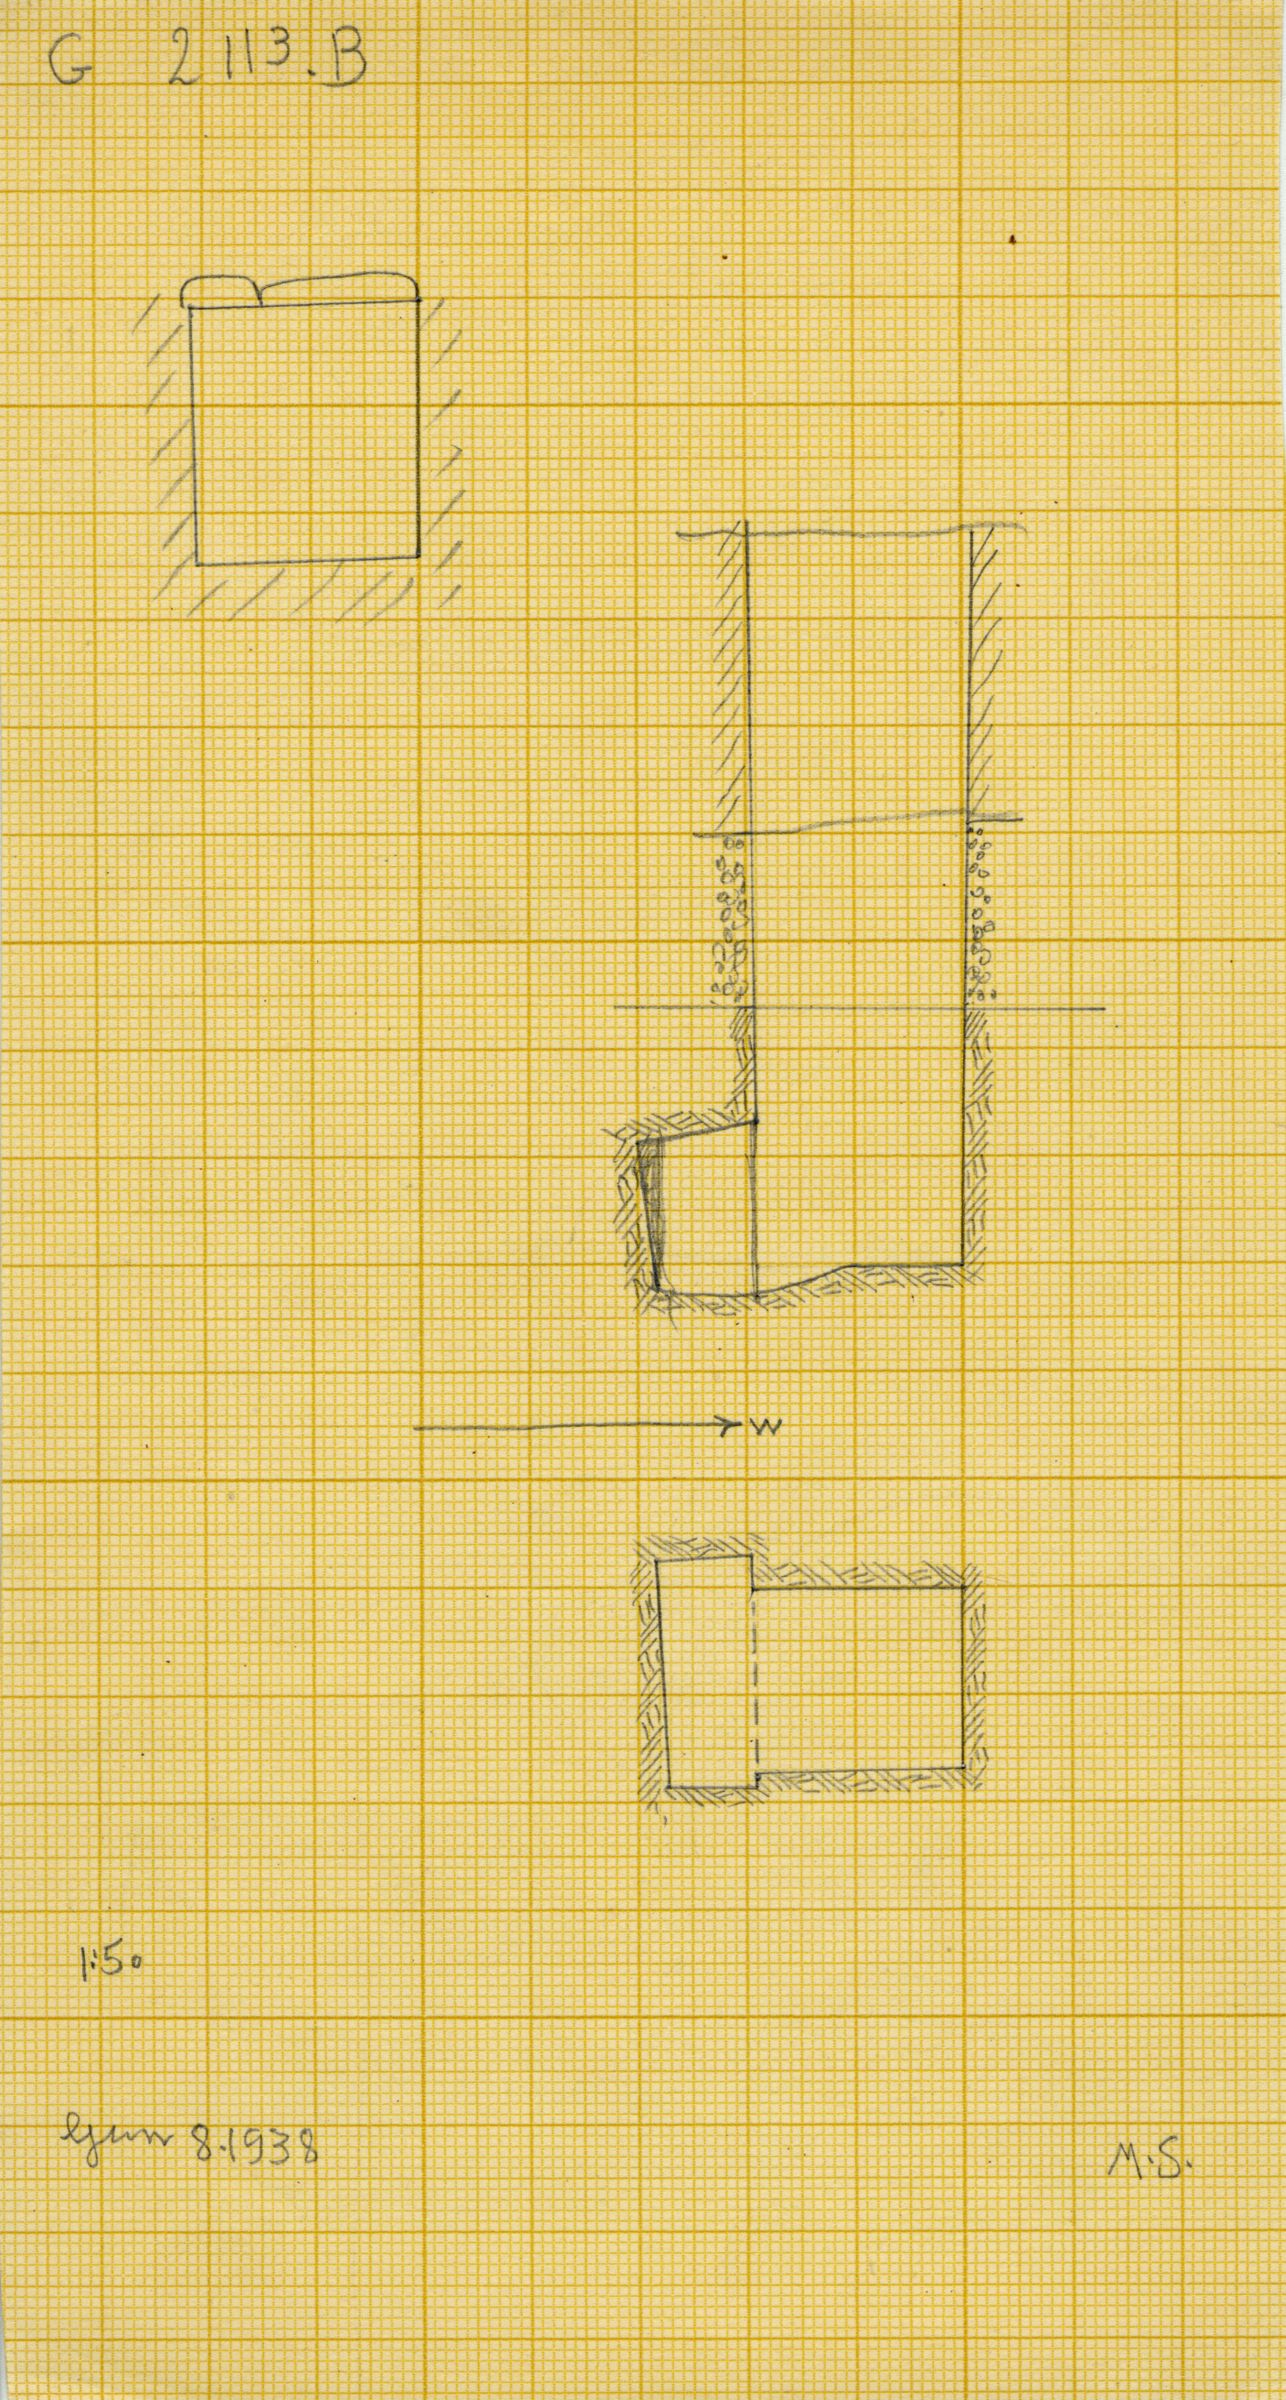 Maps and plans: G 2113, Shaft B